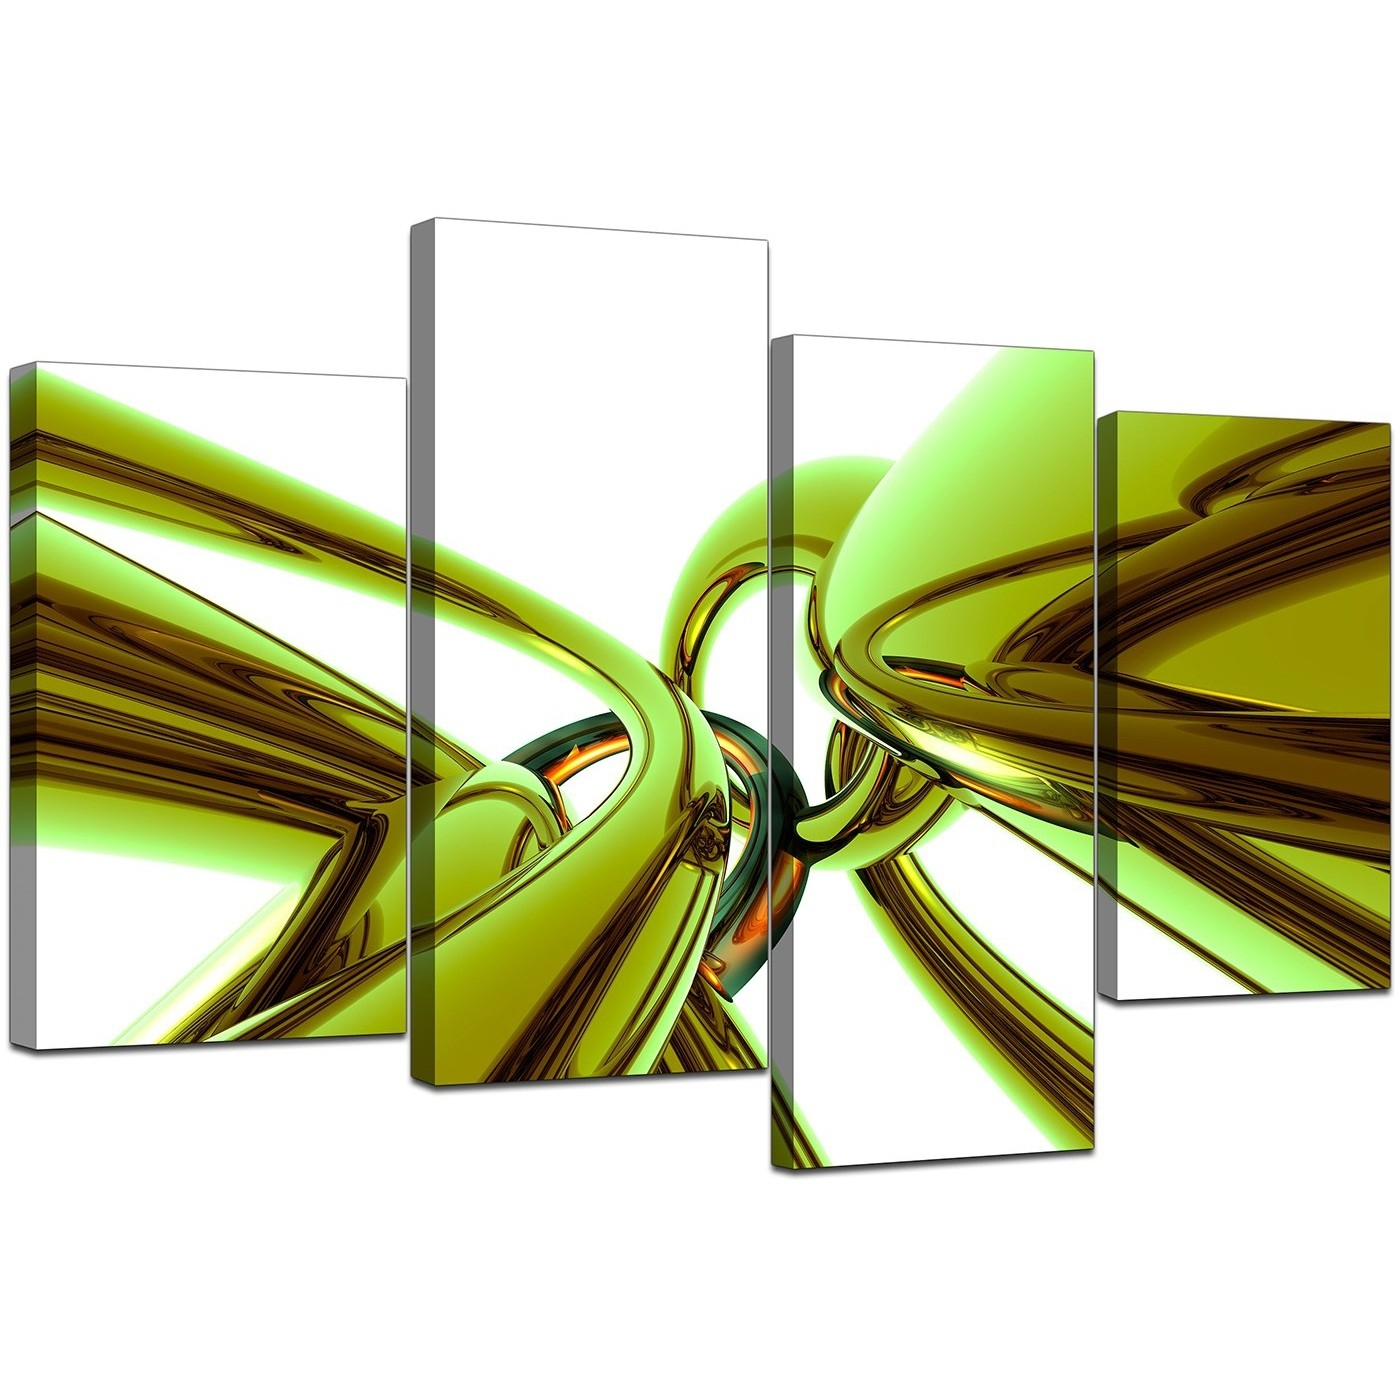 Abstract Canvas Wall Art In Green For Your Living Room – Set Of 4 For Most Popular Green Wall Art (View 5 of 20)